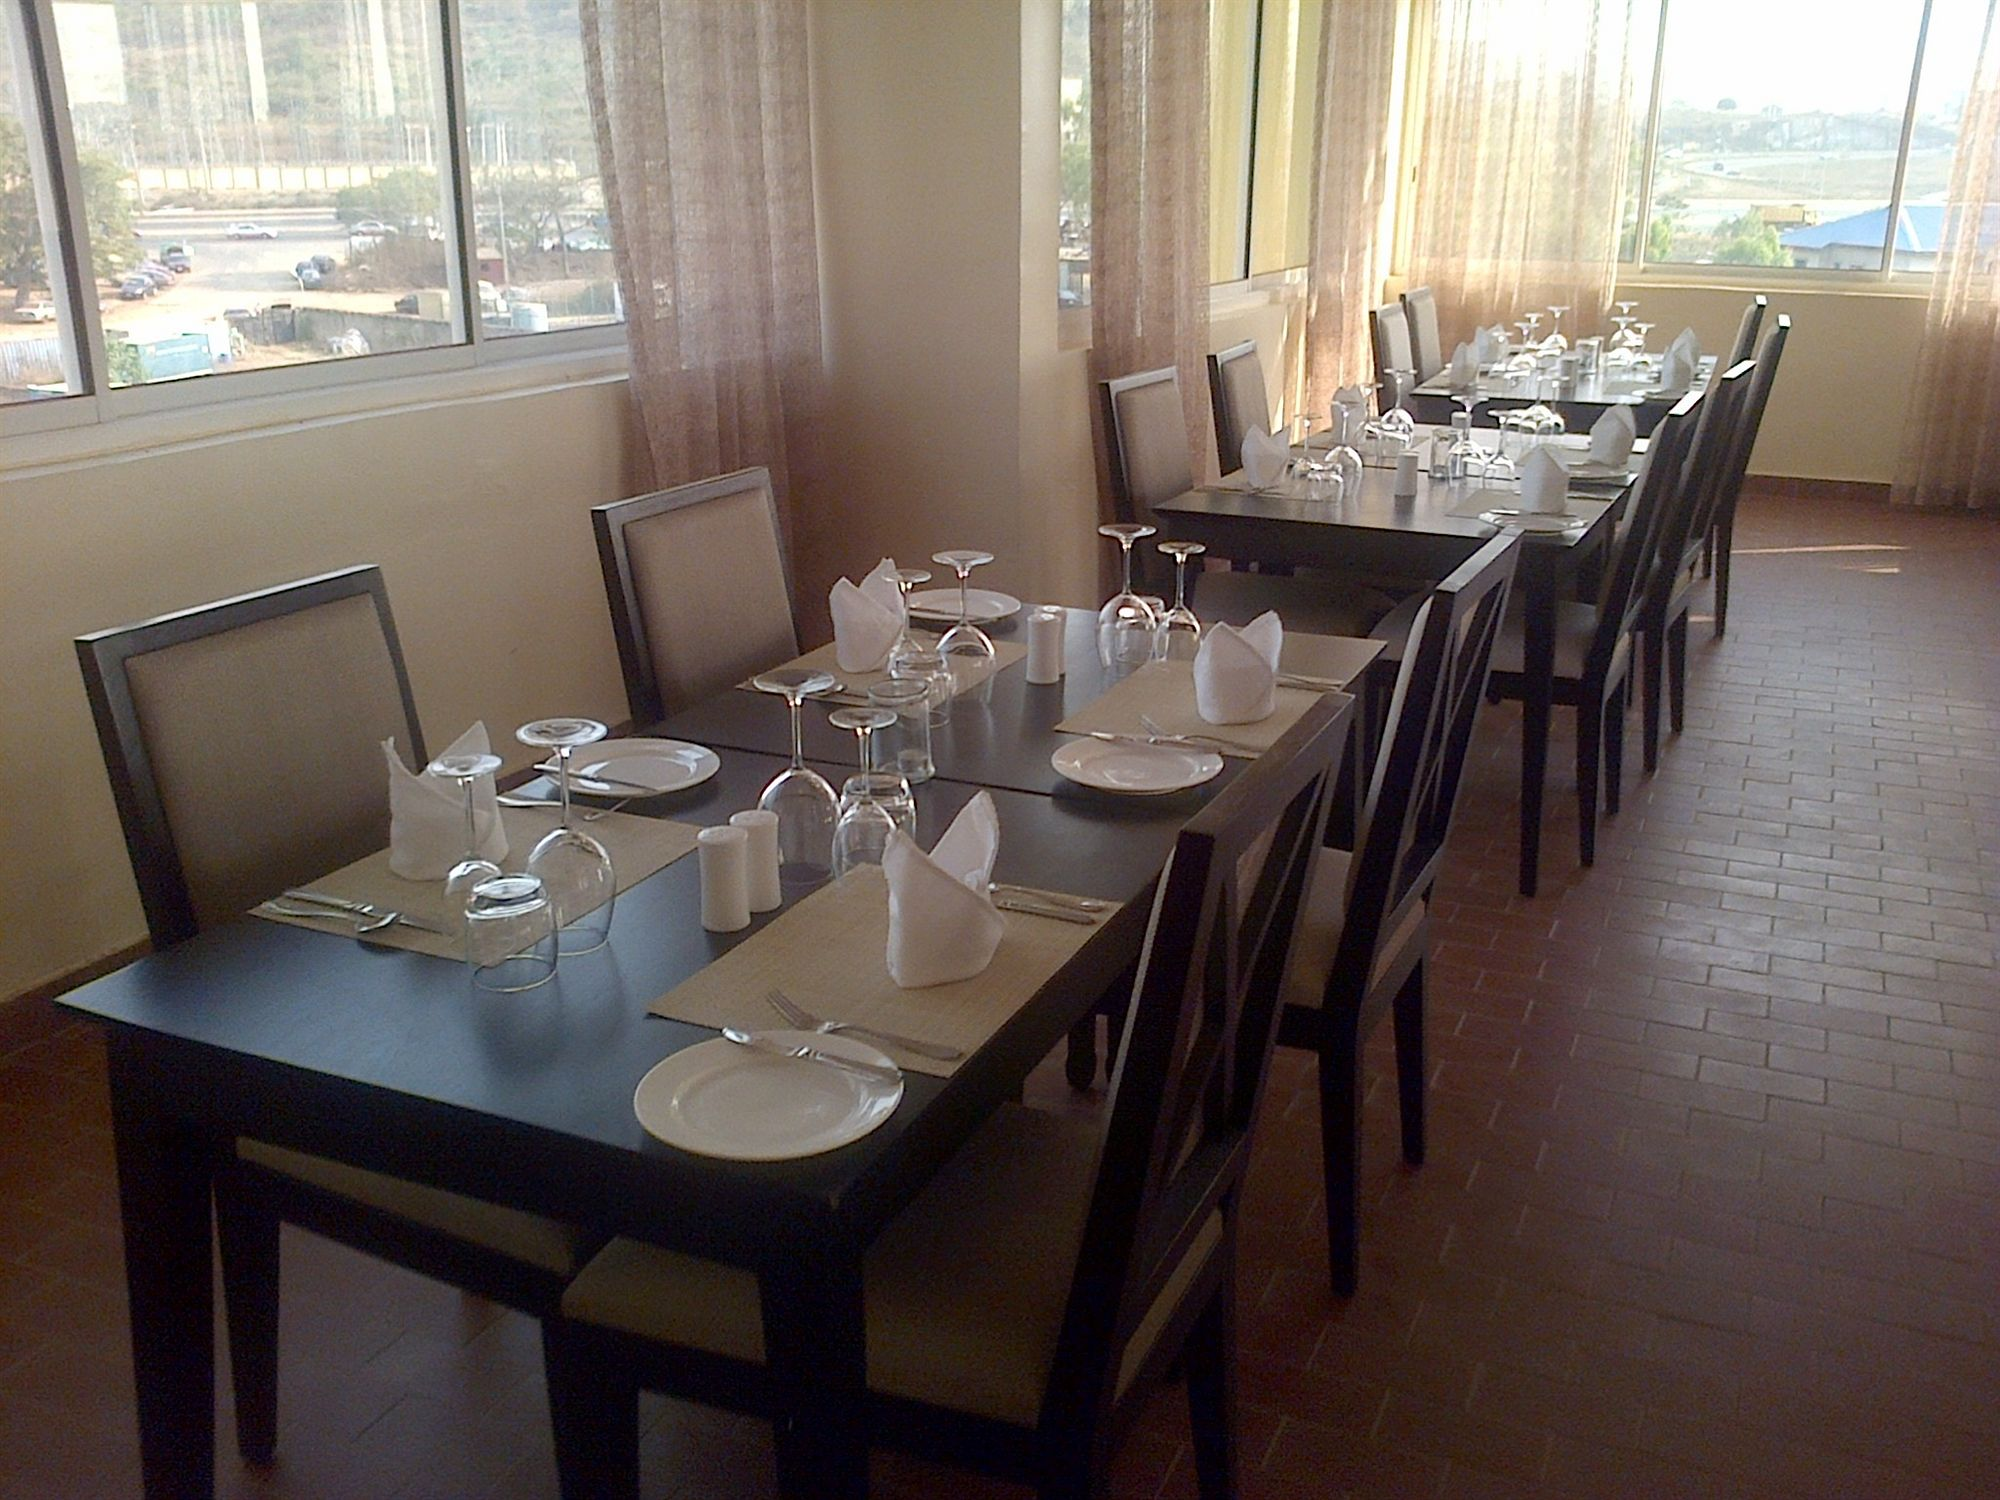 Sofa Lounge Wuse 2 Book Prixair Pure Hotel Wuse With Tajawal Book Now At Best Low